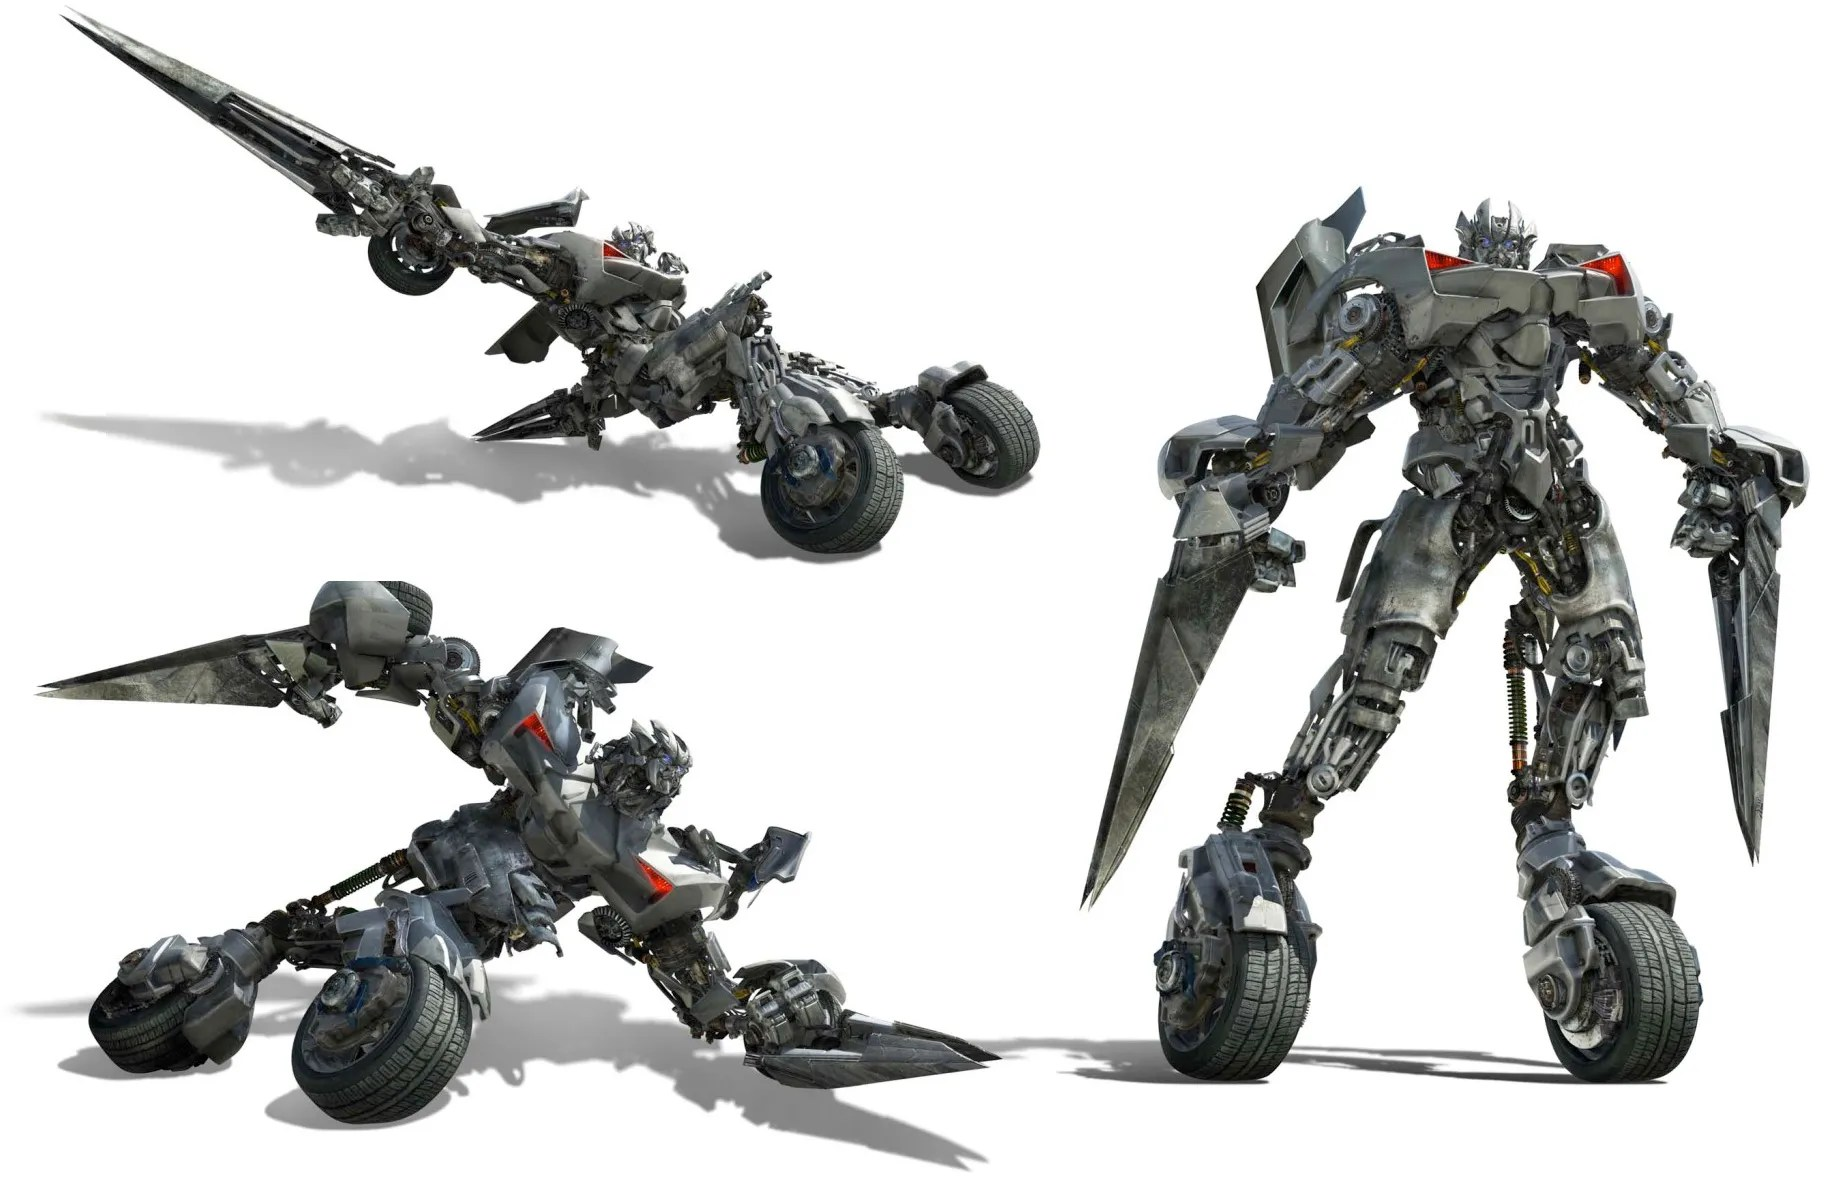 Transformers Fall Of Cybertron Wallpaper Transformers 4 Autobot Images Collider